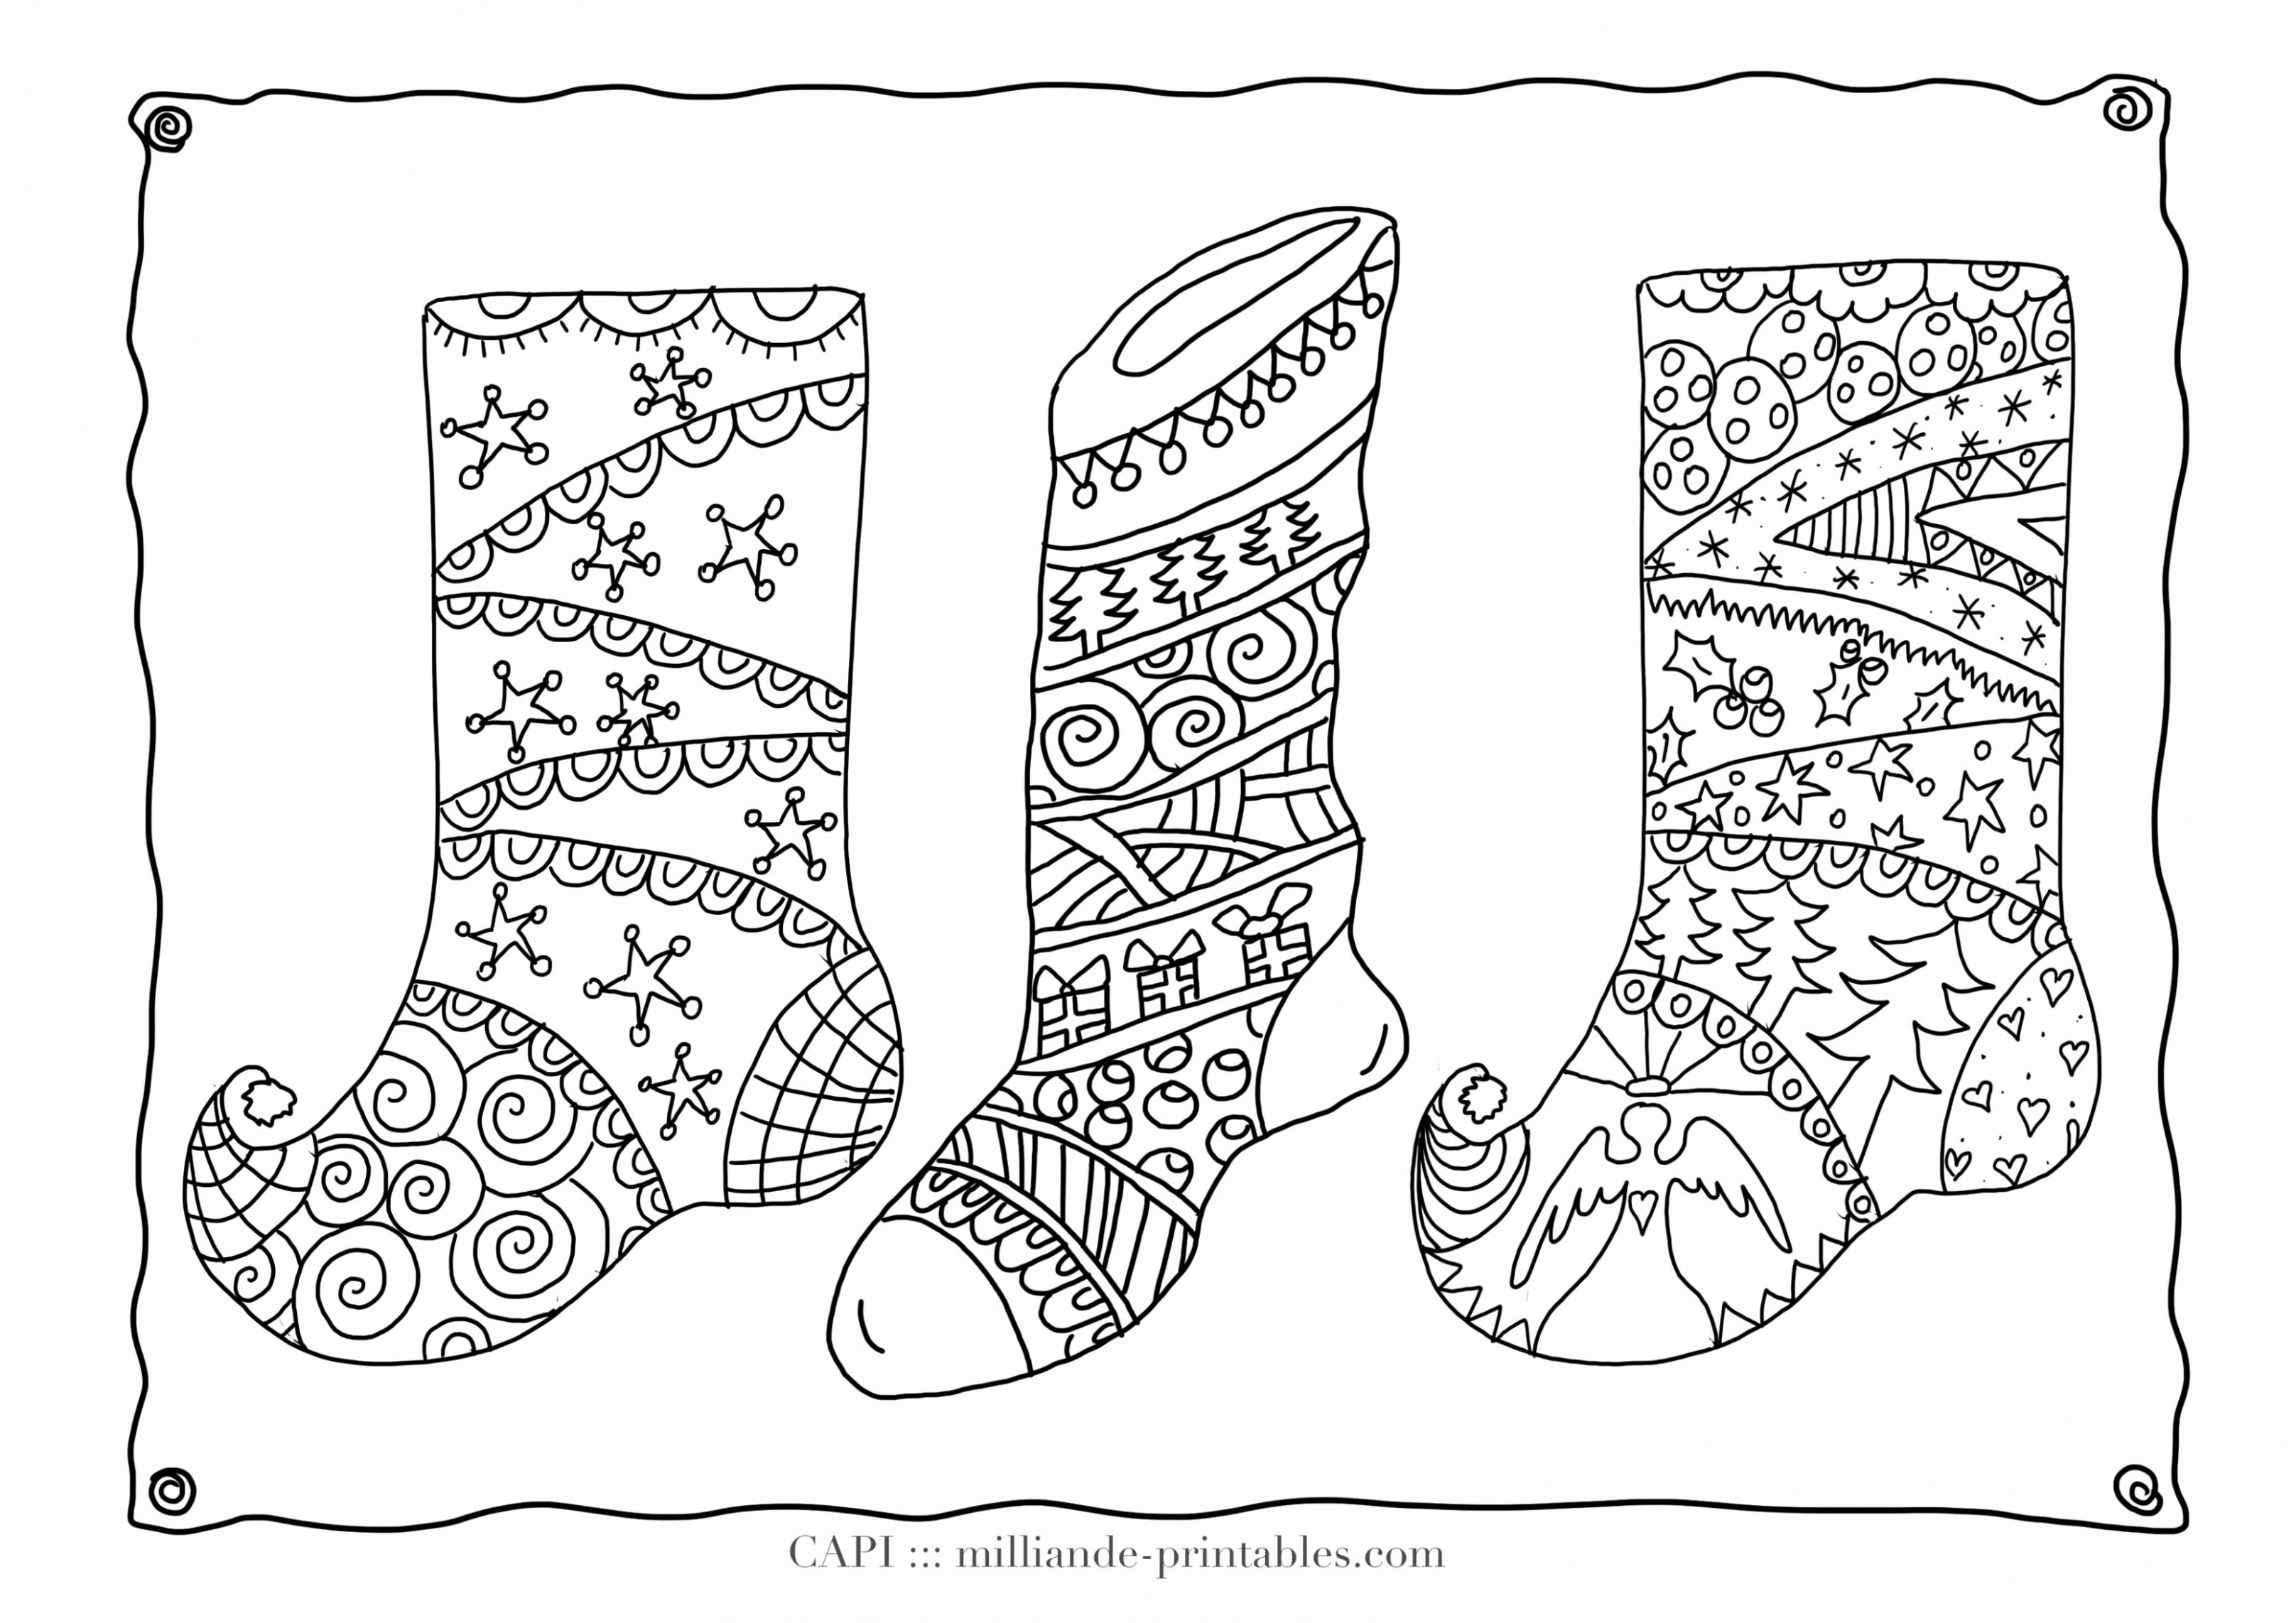 Coloring Ideas : Christmas Coloring Pages Printable Pdf Photo Ideas ...